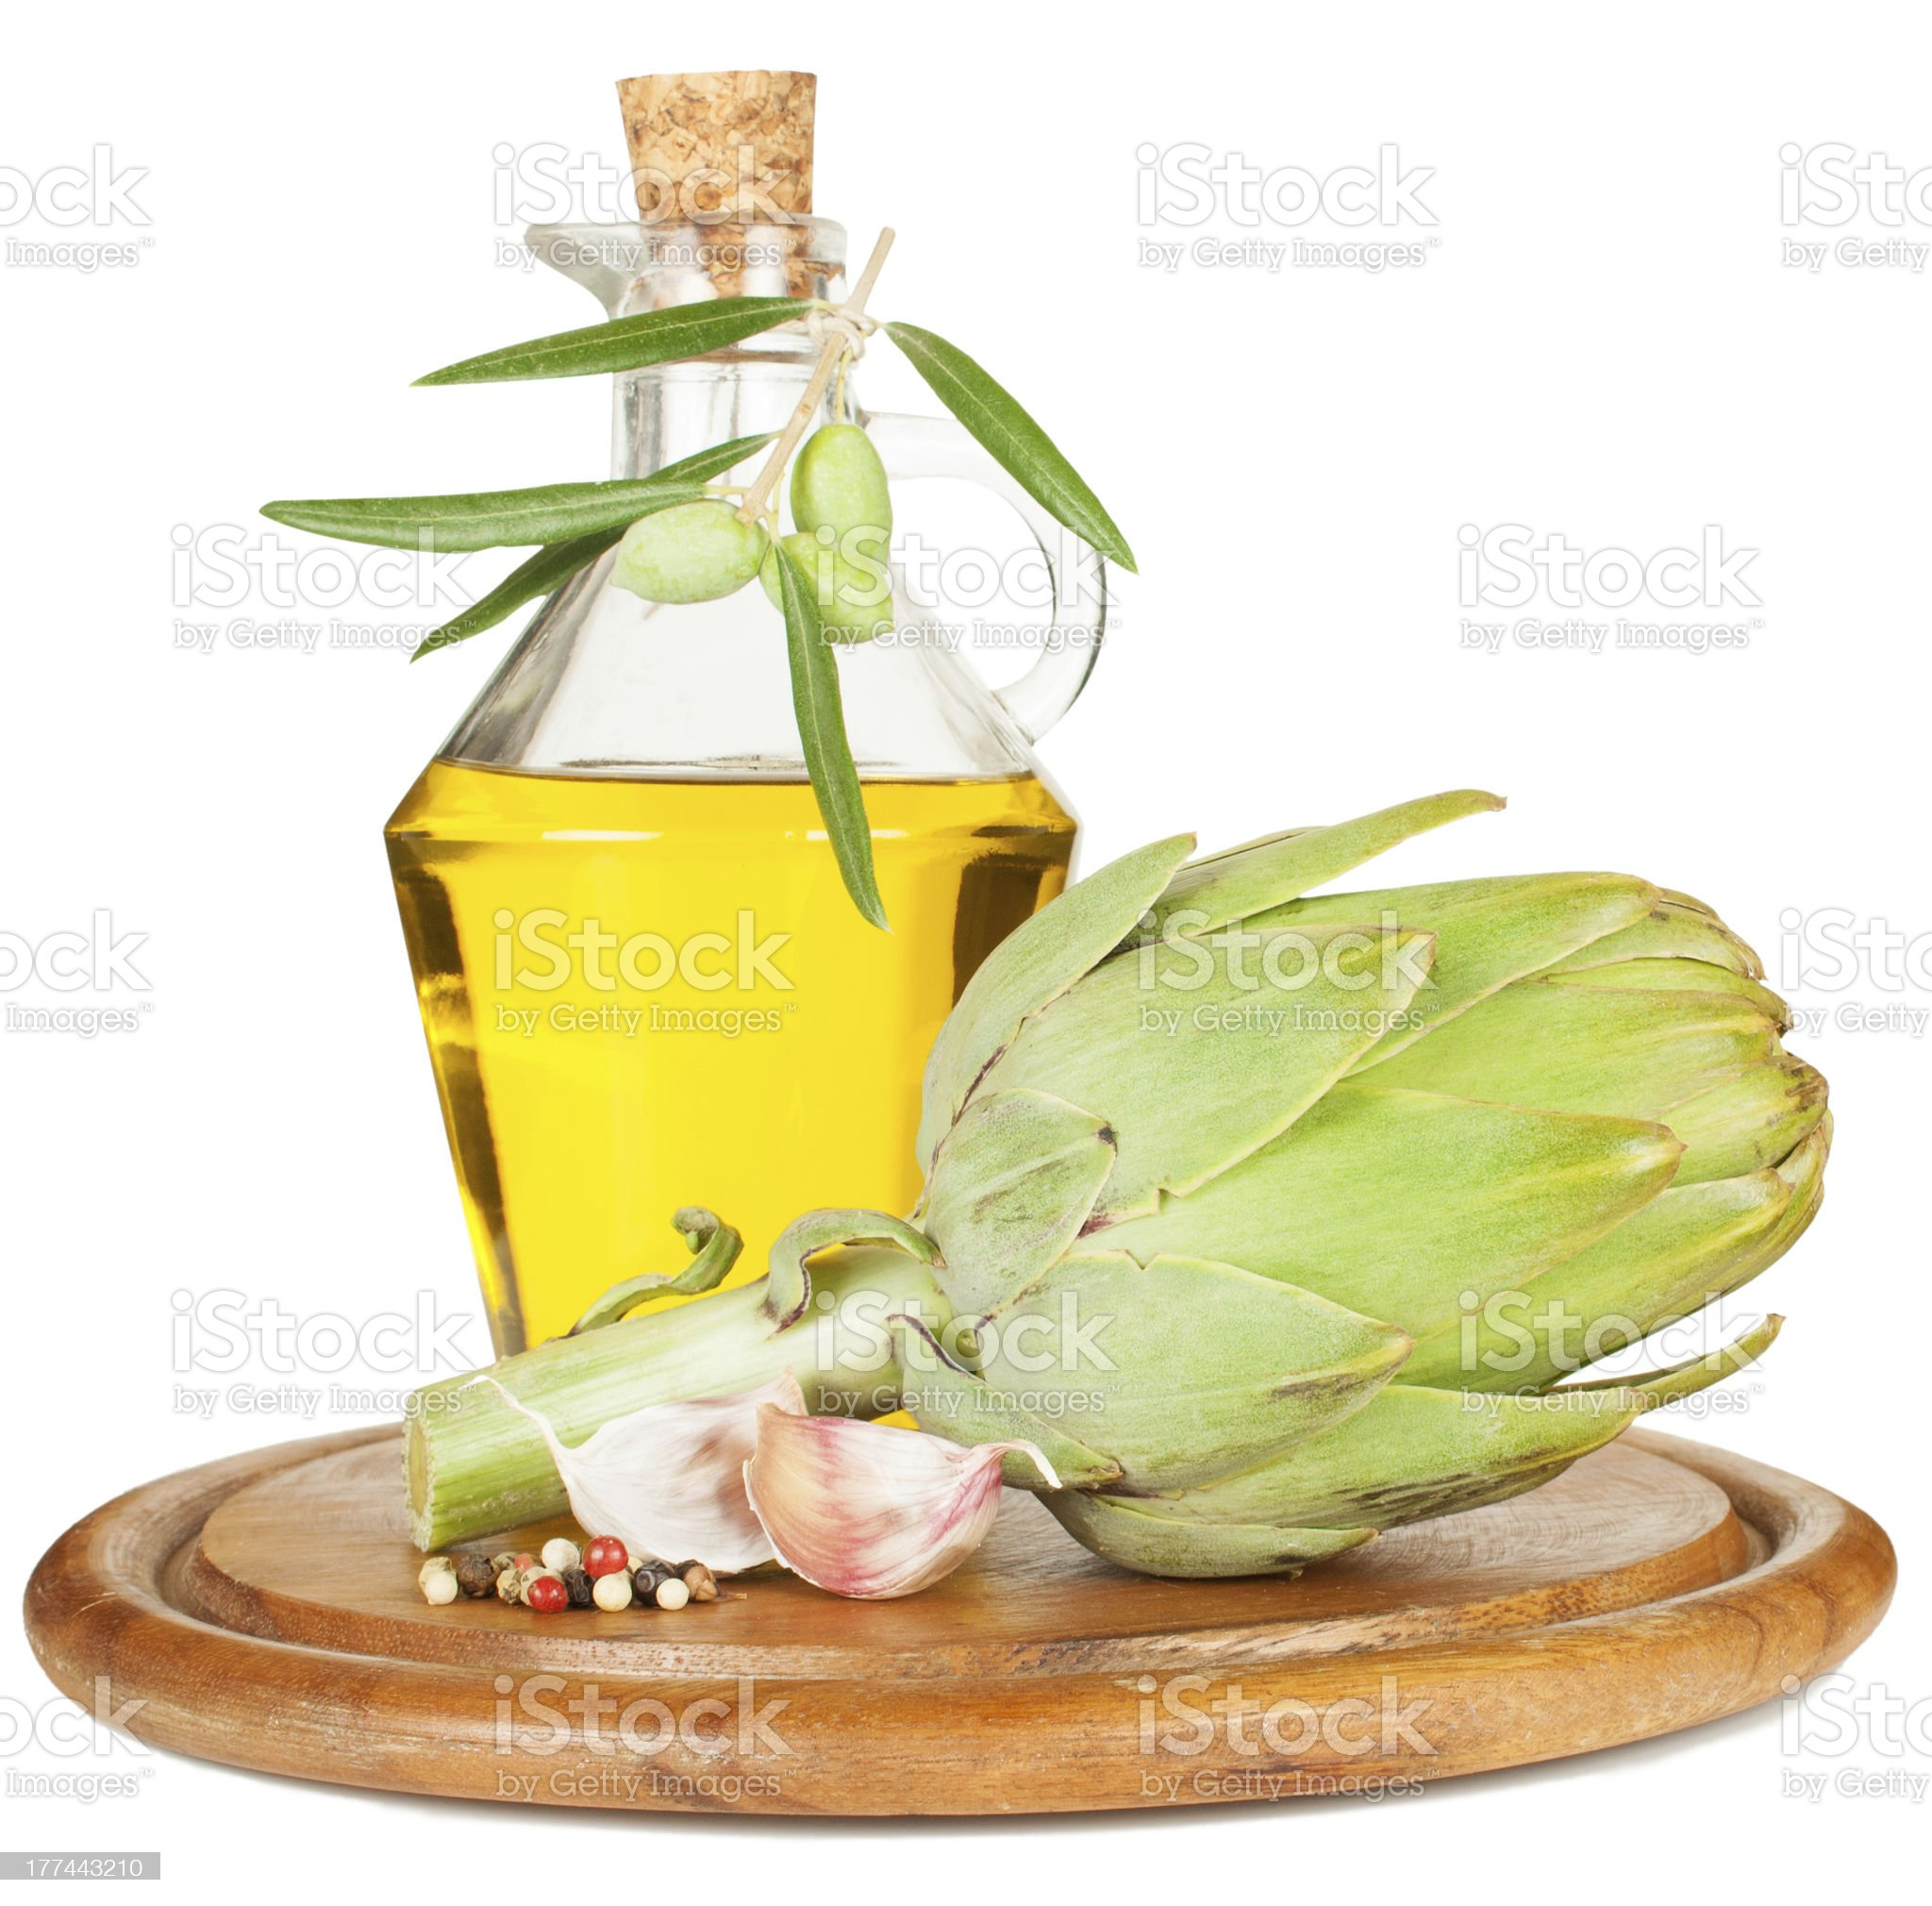 artichoke and olive oil royalty-free stock photo